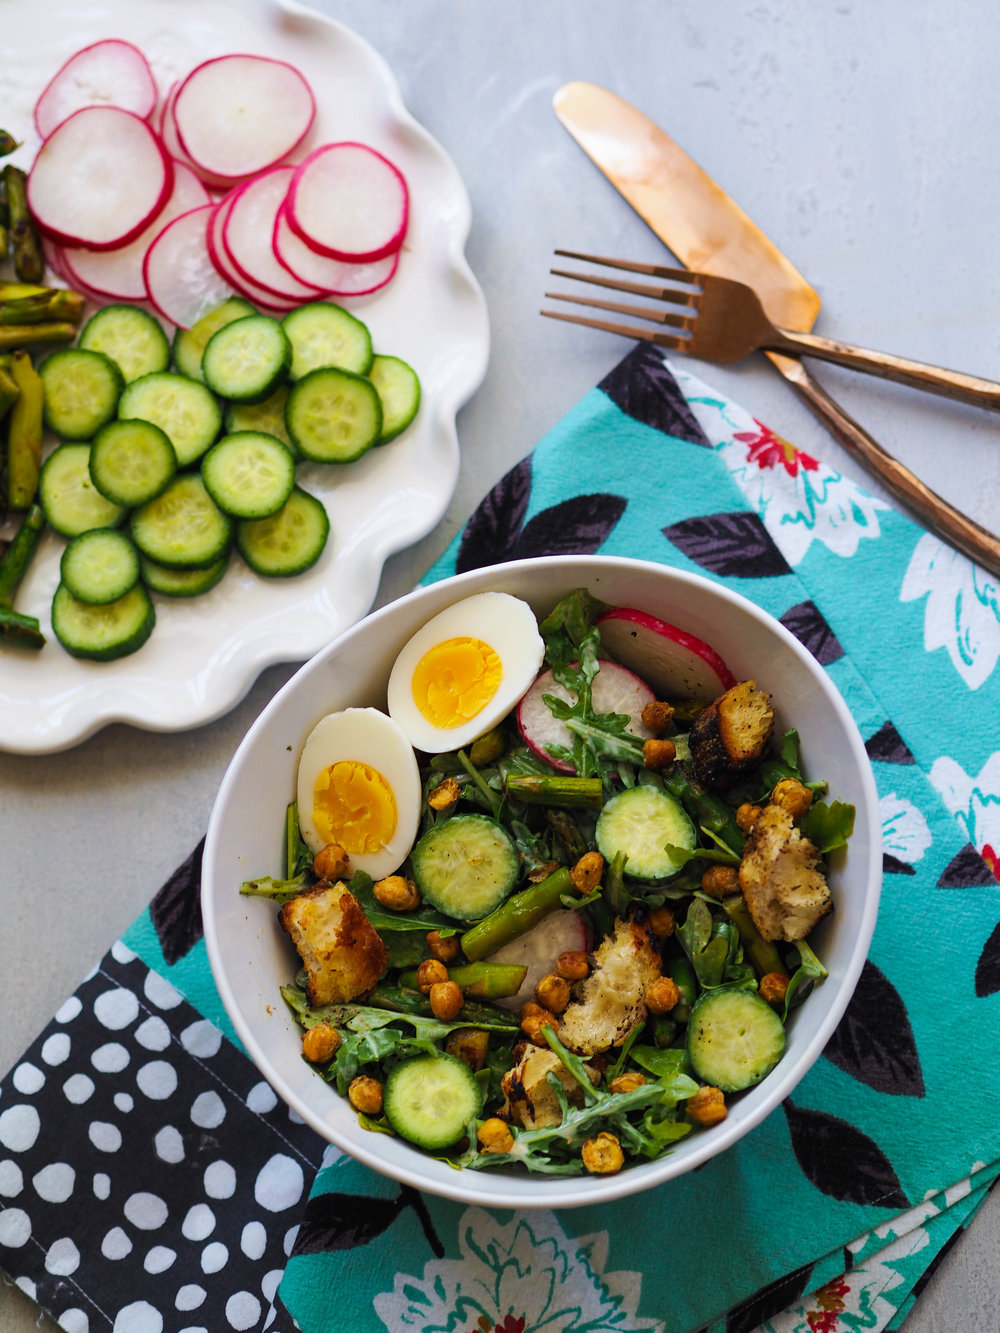 Spring Caesar salad with roasted chickpeas and za'atar croutons! #salad #spring #healthyrecipe #asparagus #vegetarian